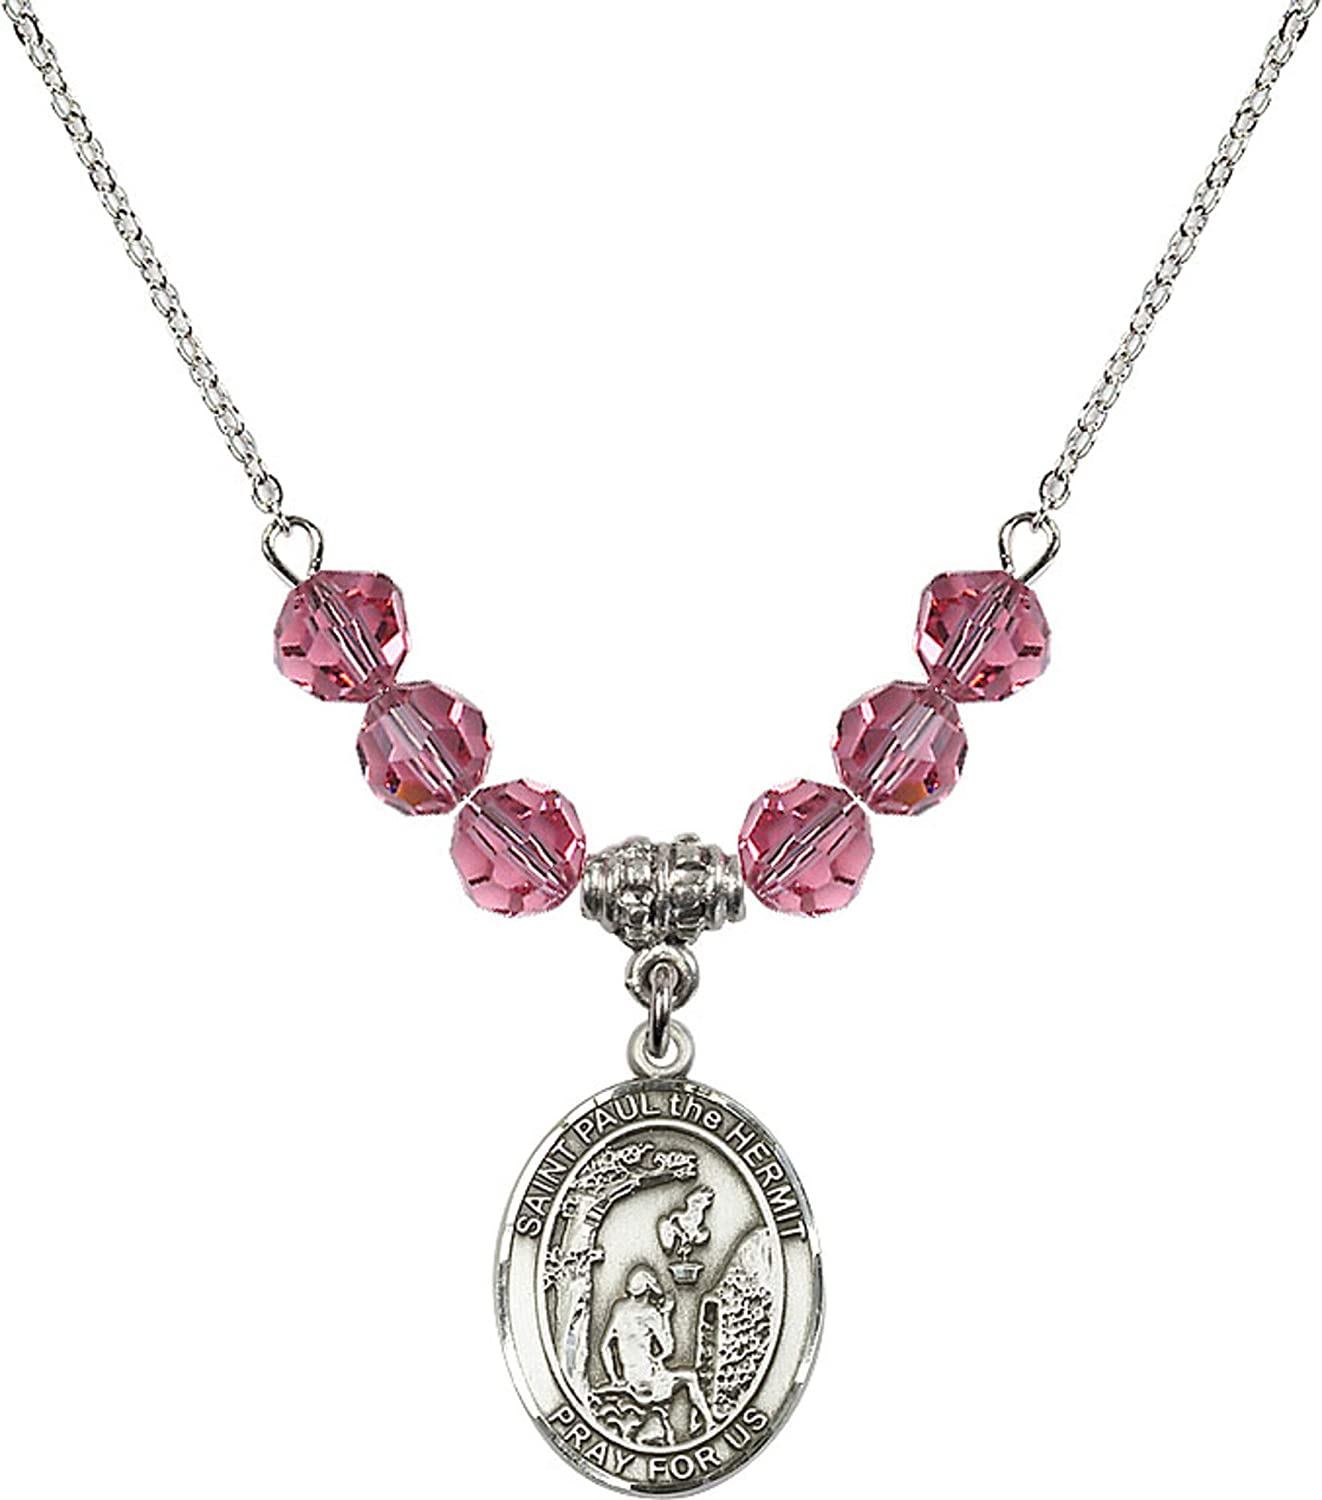 Bonyak Jewelry 18 Inch Rhodium Plated Necklace w// 6mm Rose Pink October Birth Month Stone Beads and Saint Paul The Hermit Charm